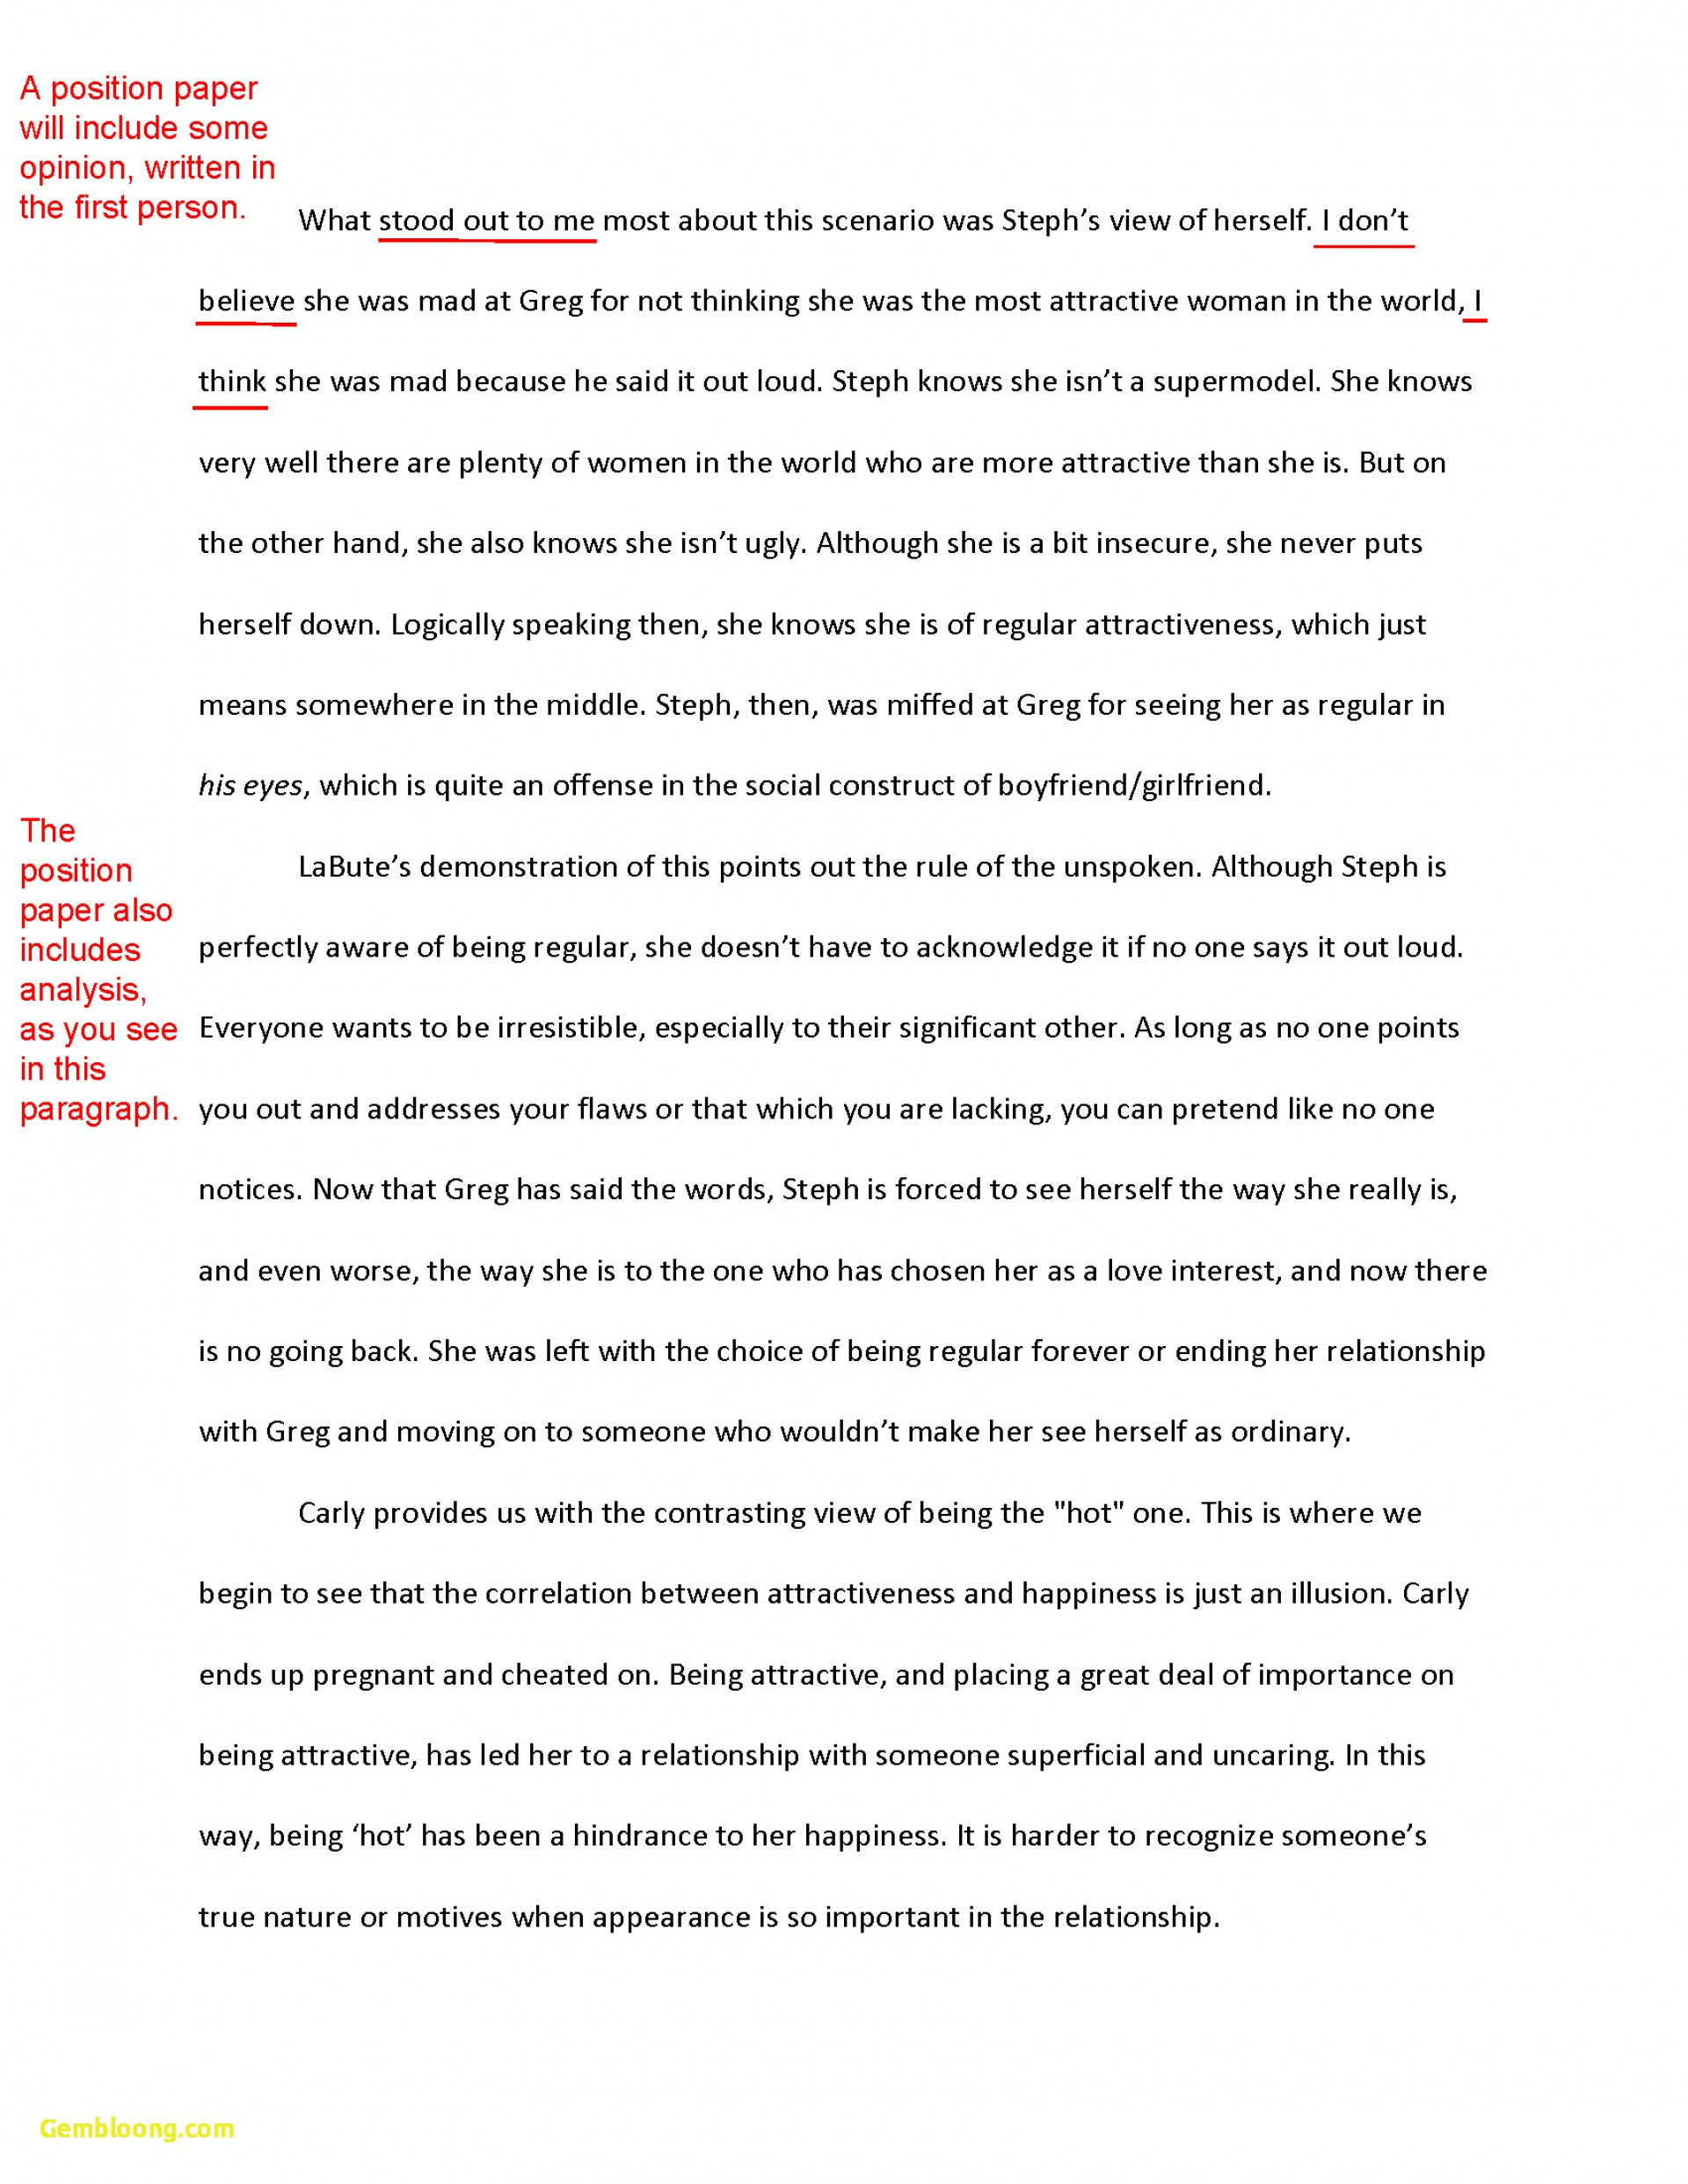 005 Apa Format Essay Example Sample New How To Write Response Paper Stupendous Citation Style Research 6th Edition Pdf 1920